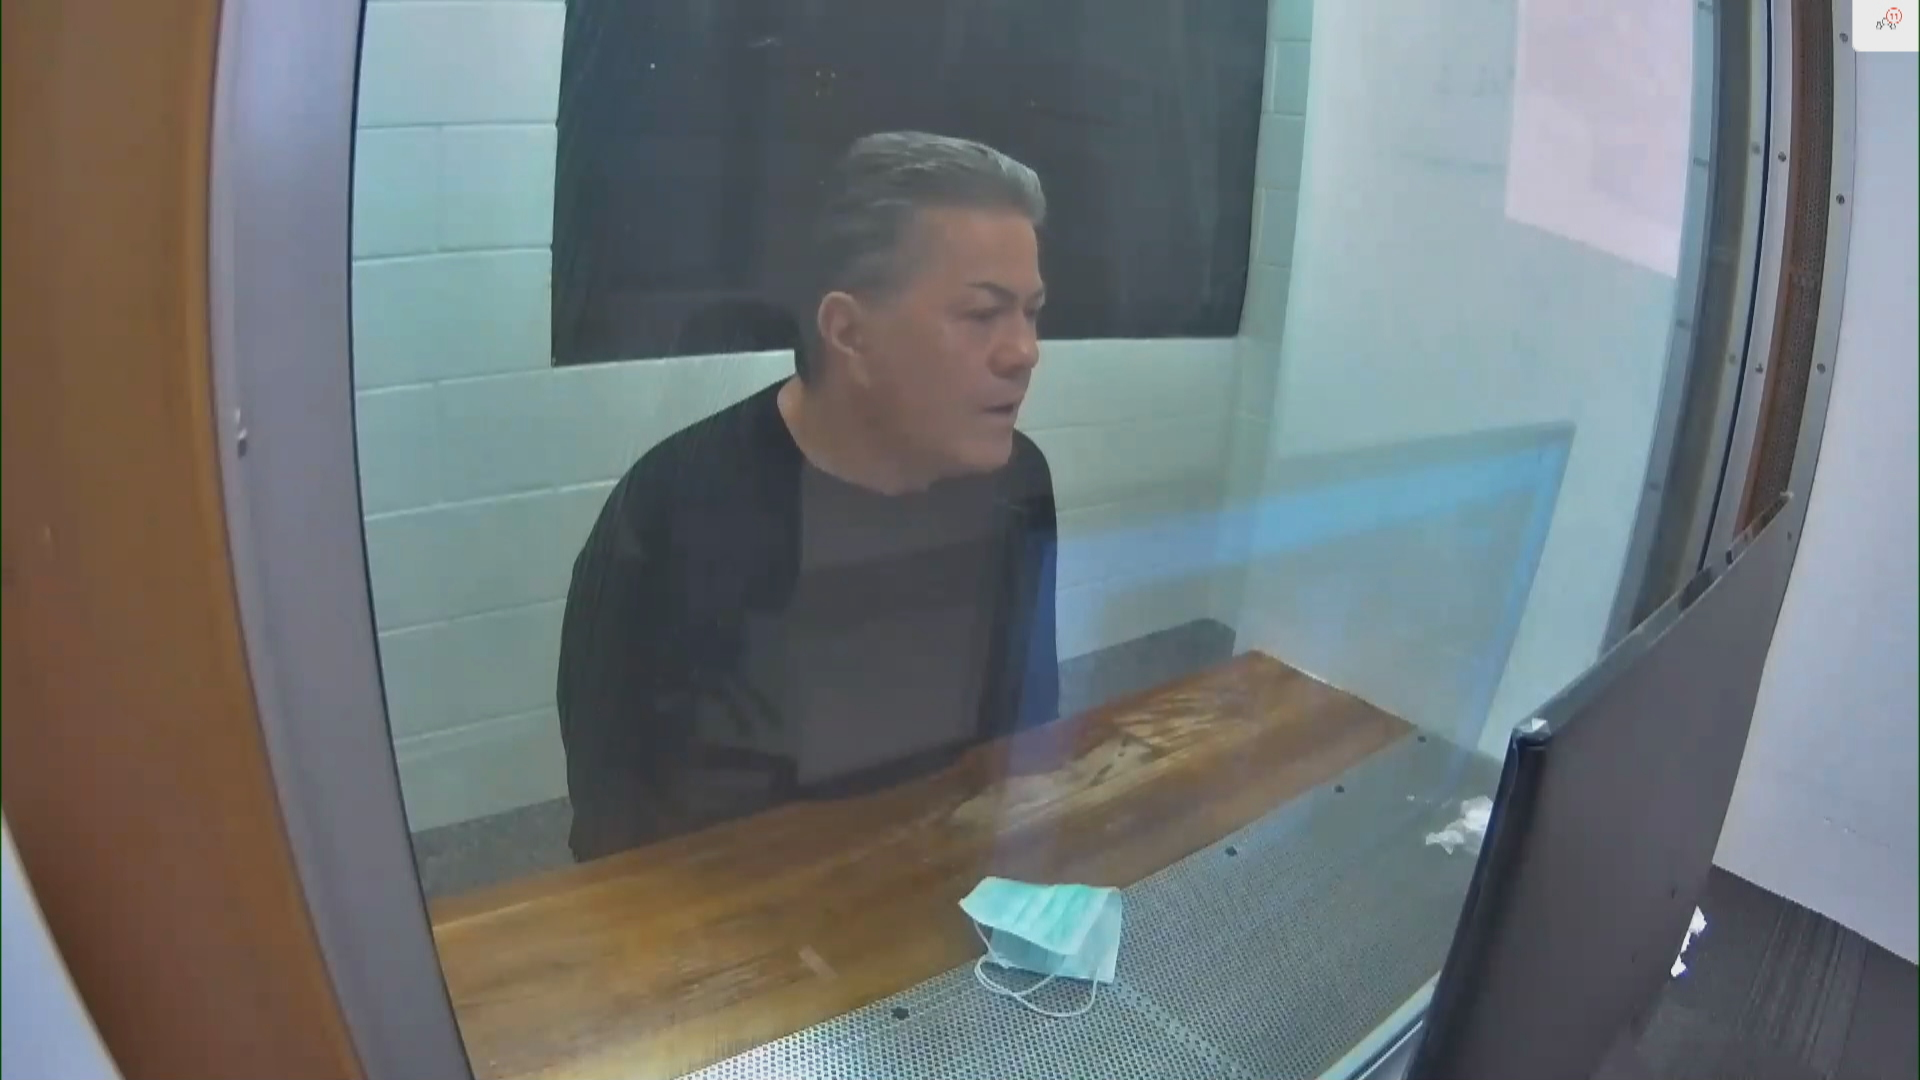 Brian Tamaki appears in court as supporters shout 'let him go'